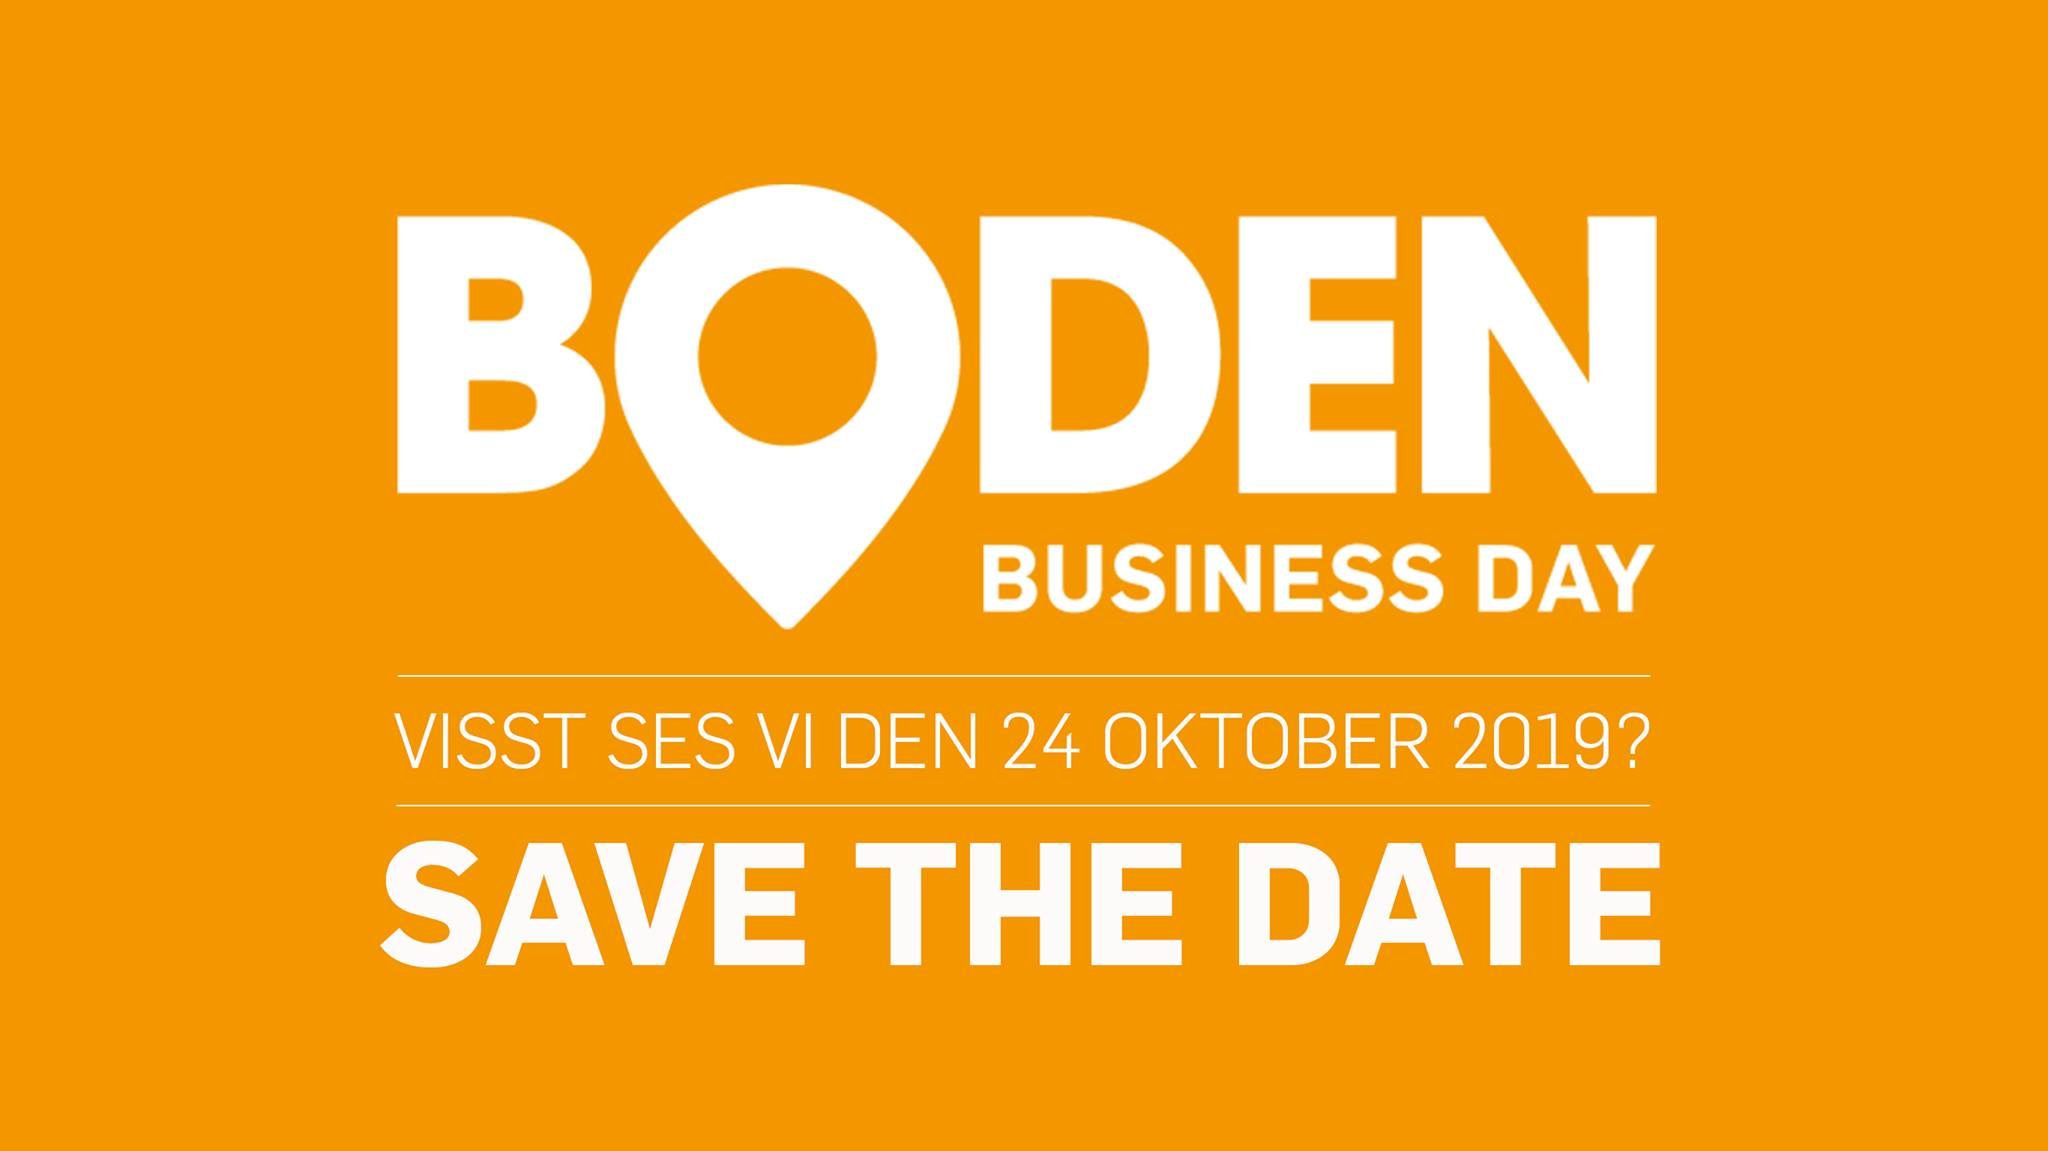 Boden Business Day 2019